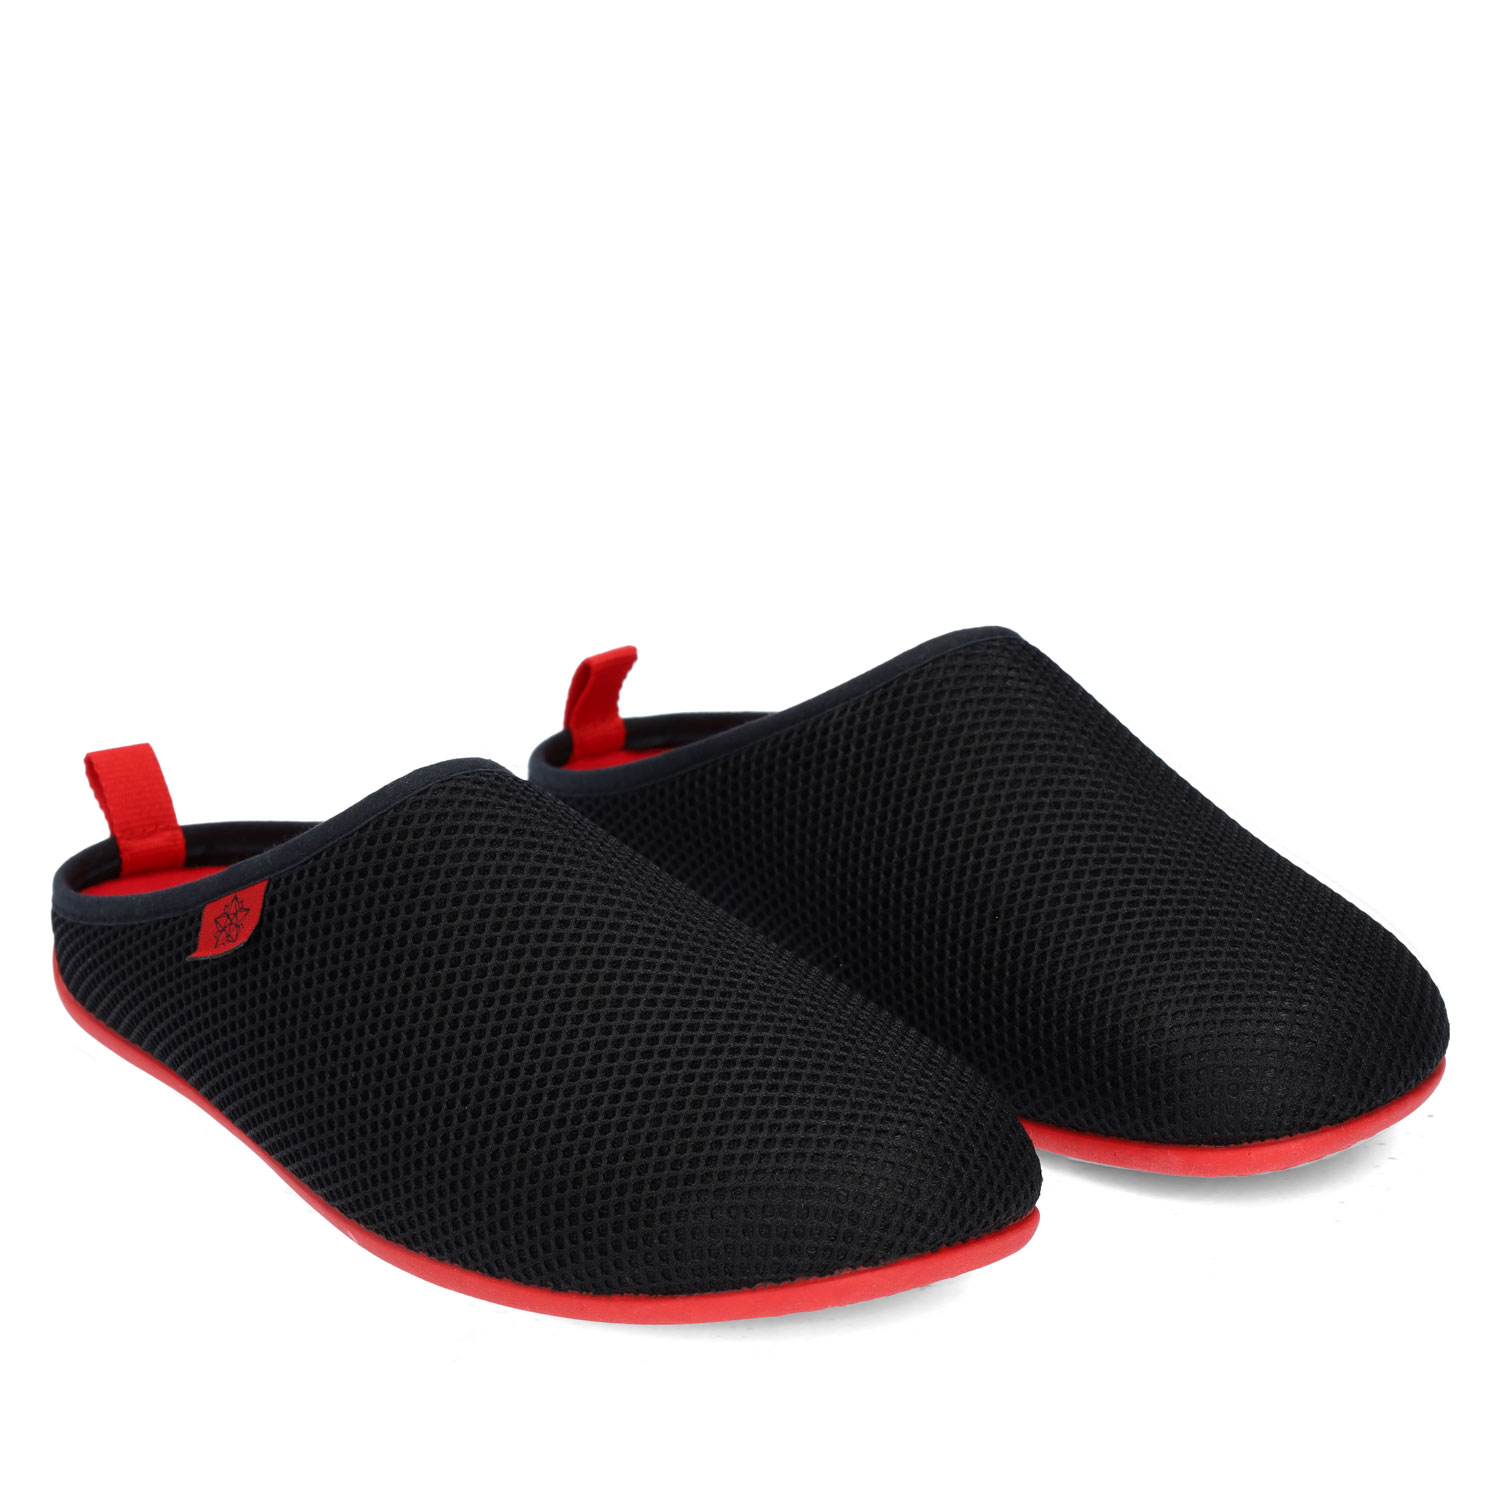 Spring/ Summer Unisex Slippers in Black mesh with Red outsole